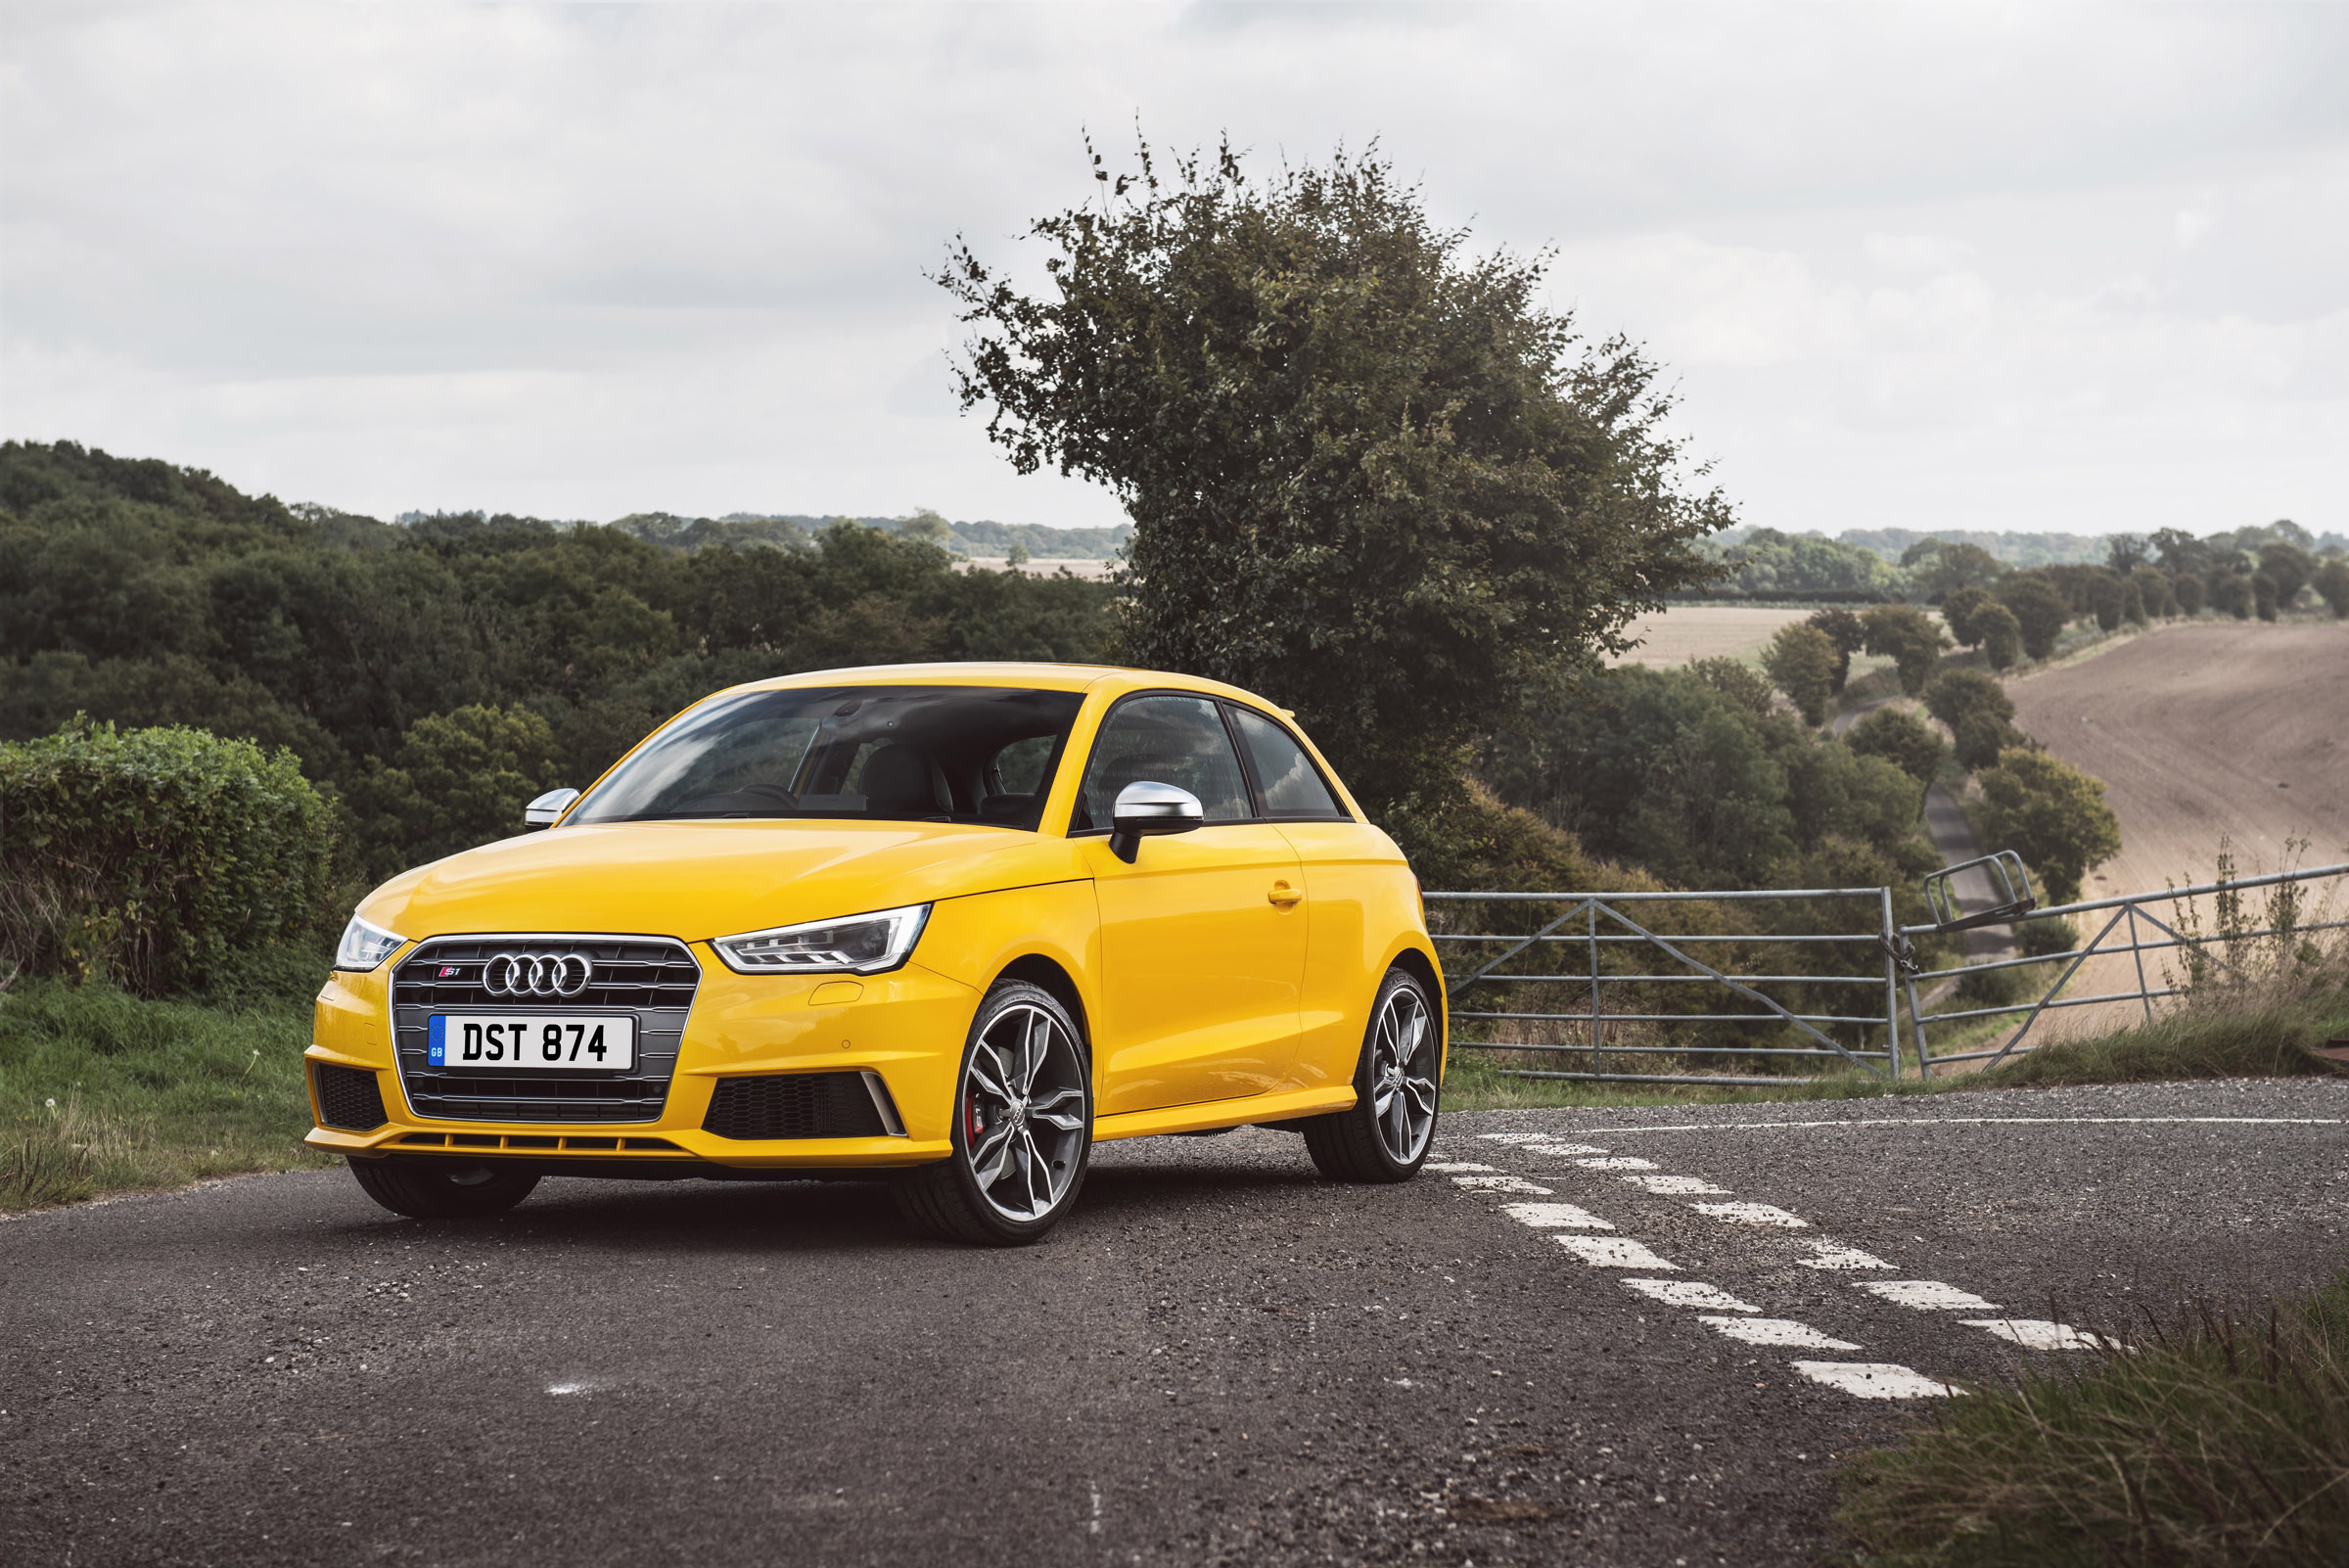 Audi Rs7 0-60 >> Audi S1 Quattro review - prices, specs and 0-60 time | Evo